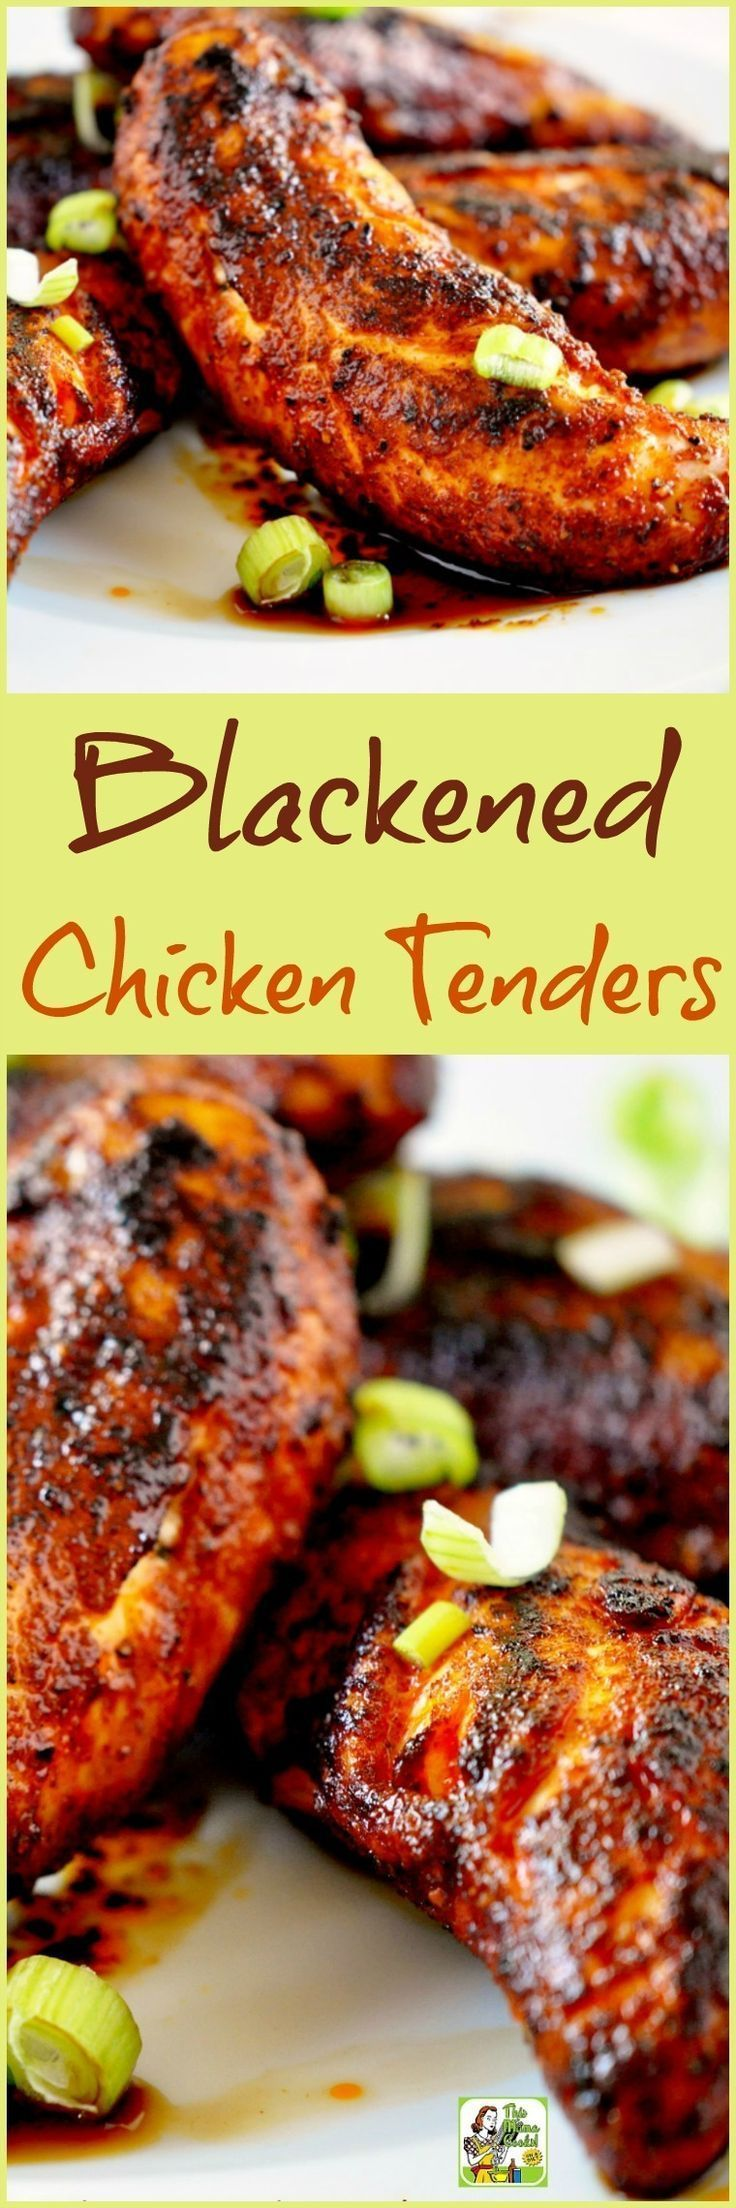 Blackened Chicken Tenders Recipe Recipes For Dinner Chicken Tender Recipes And Recipes For